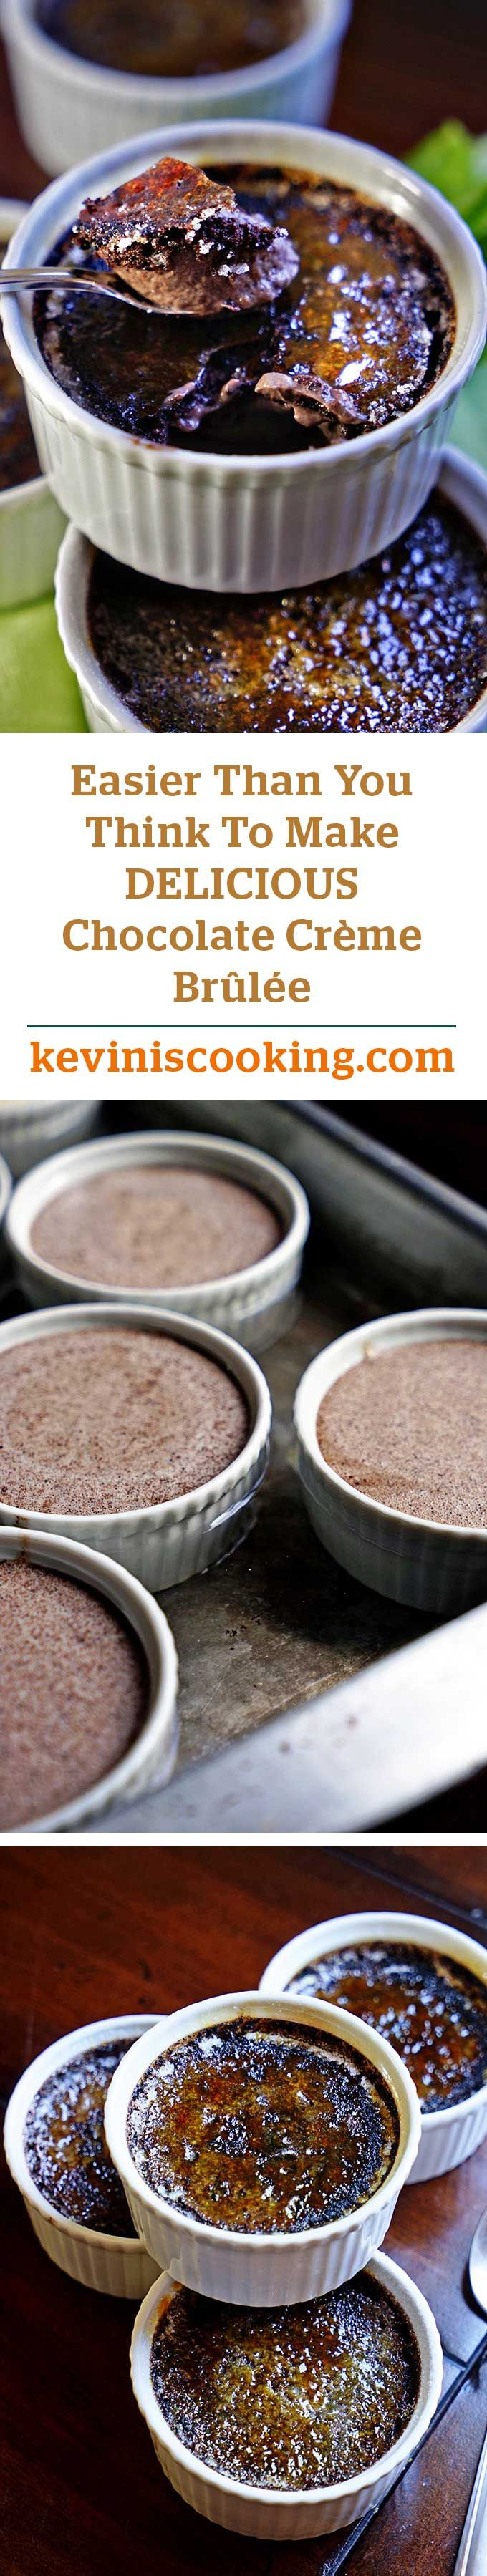 "Chocolate Creme Brulee - www.keviniscooking.com"" /></div>"